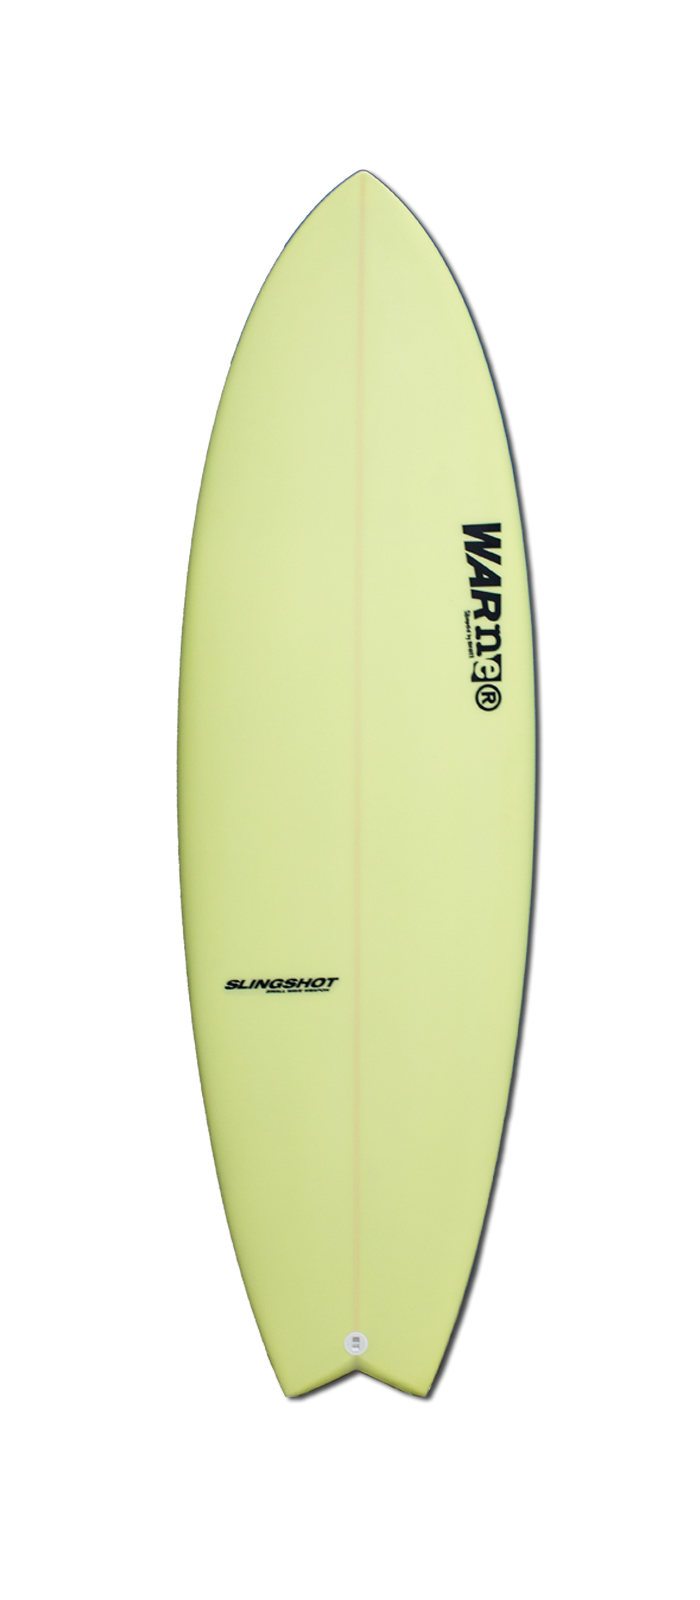 SLINGSHOT surfboard model